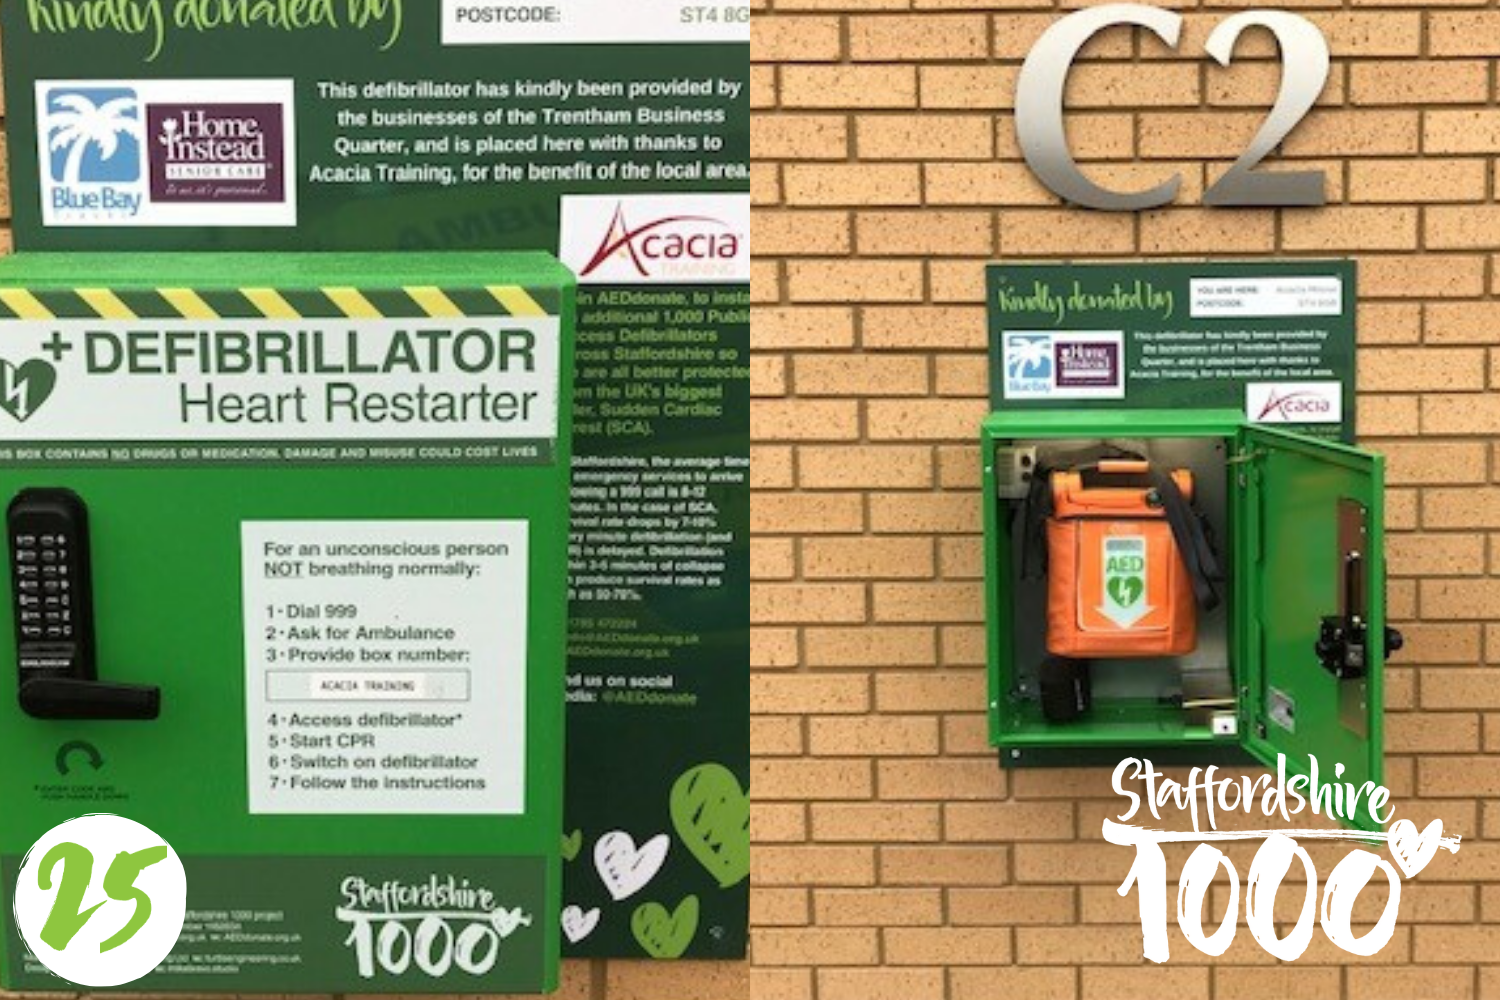 Defibrillator now available 24/7 at Acacia Training